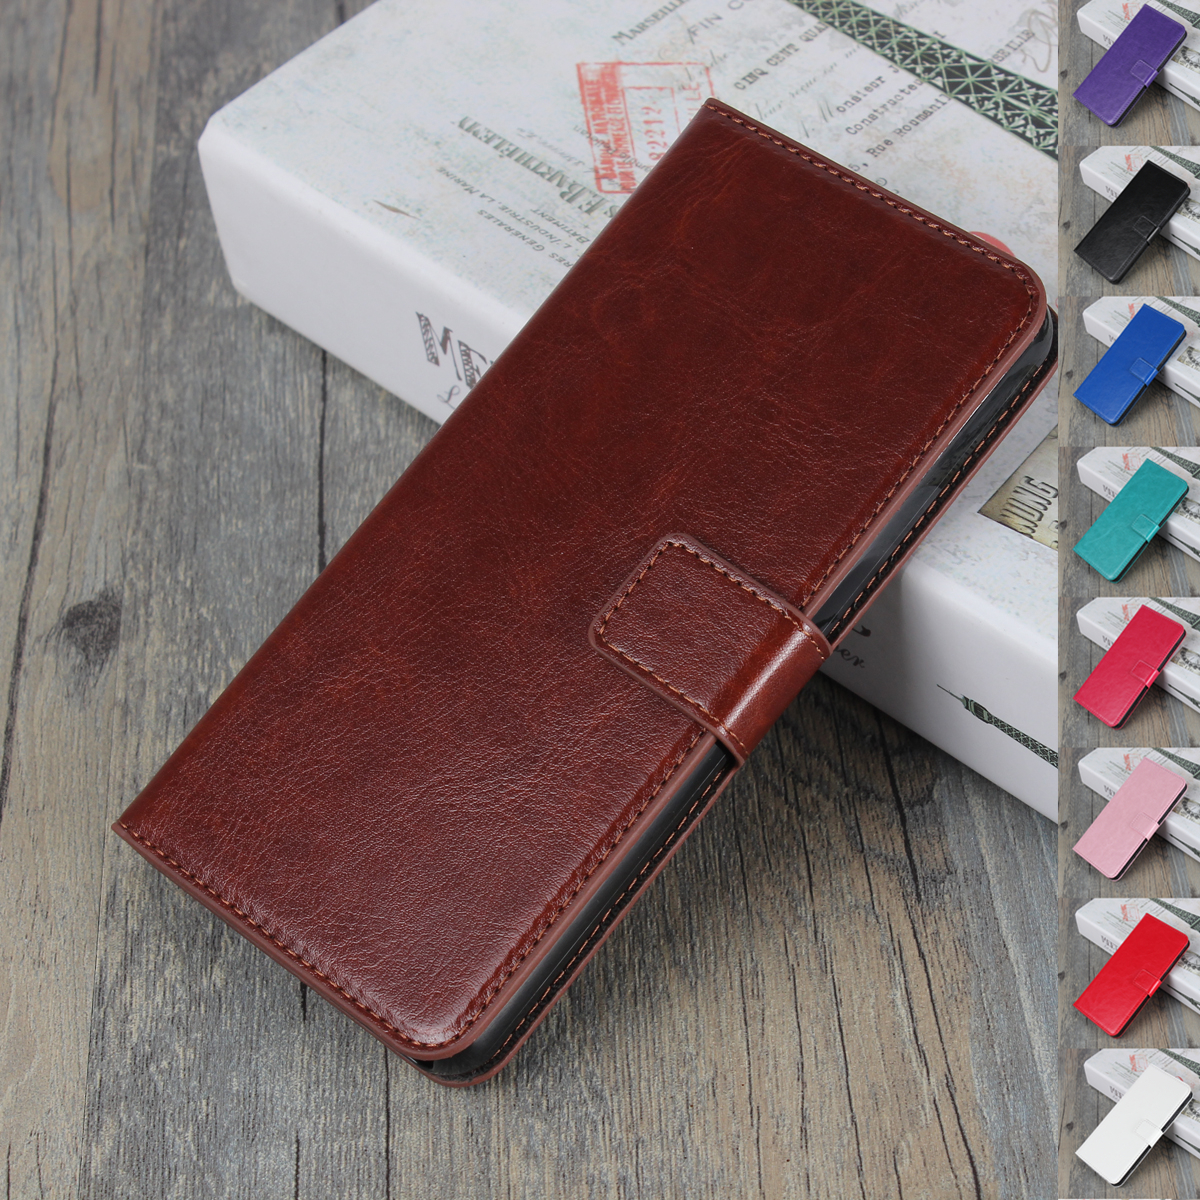 Beautiful Clip On Series Pu Leather Wallet Book Case For Lenovo Vibe X S960 Packing Of Nominated Brand Cases, Covers & Skins Cell Phones & Accessories